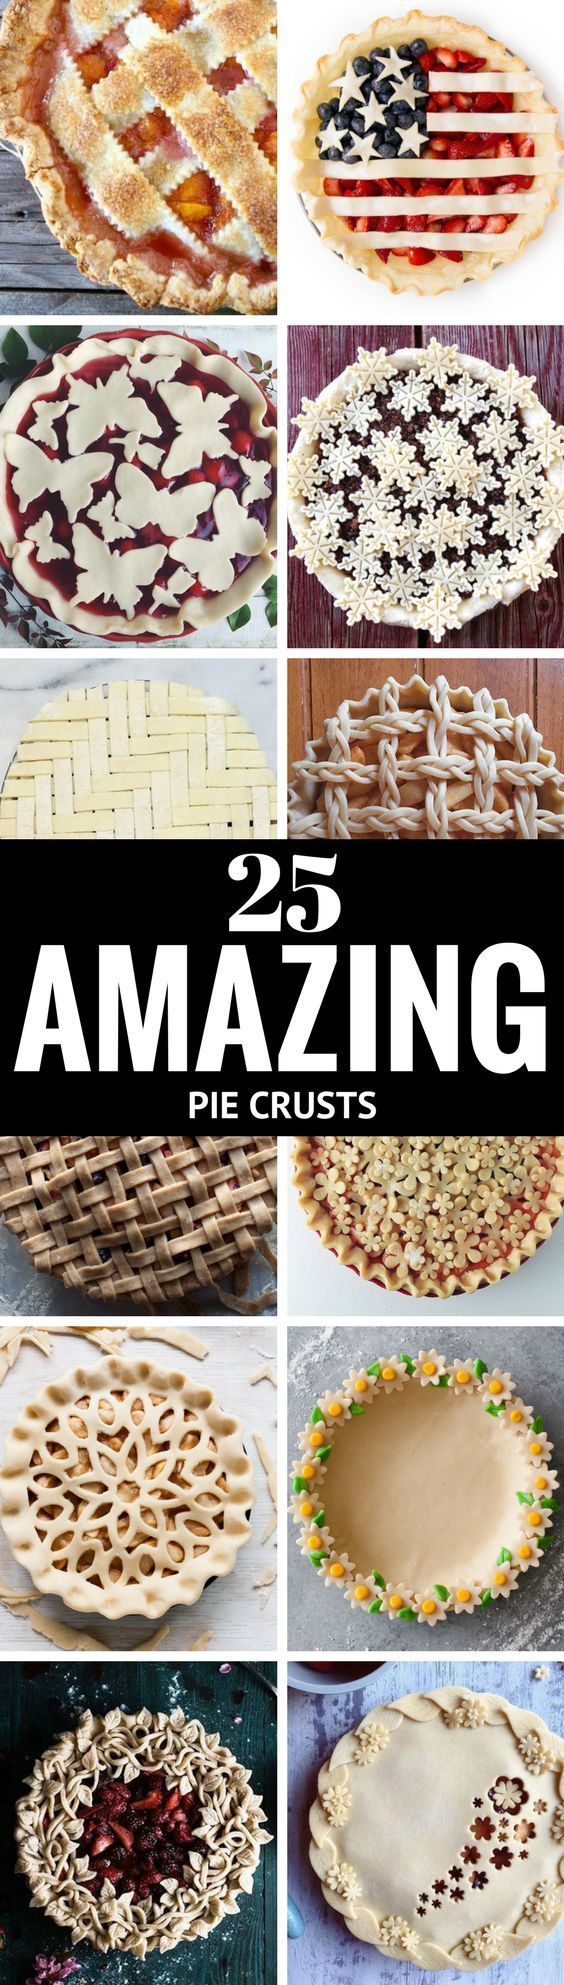 25 Amazing Pie Crusts ~ prepare to be awed and inspired by these epic examples of pastry genius, and just in time for pie baking season...so tie on your aprons and let's get rolling...   dessert   pie   Holdiday desserts   baking   #dessertfoodrecipes